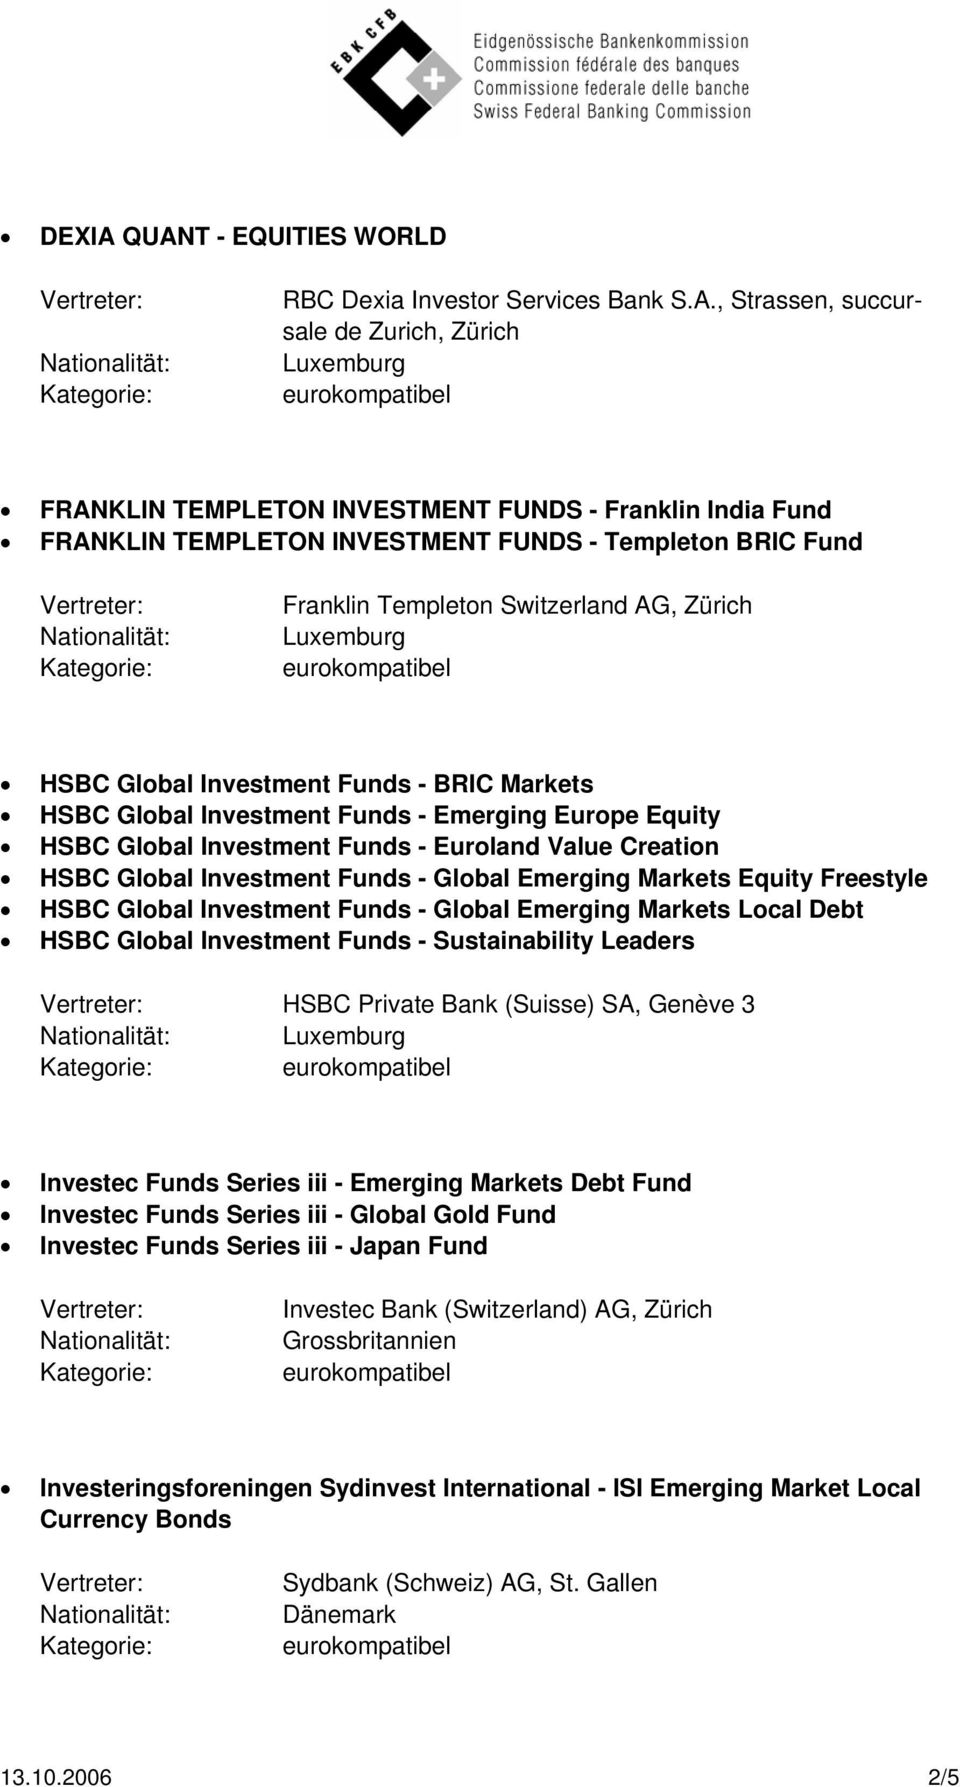 Templeton BRIC Fund Franklin Templeton Switzerland AG, Zürich HSBC Global Investment Funds - BRIC Markets HSBC Global Investment Funds - Emerging Europe Equity HSBC Global Investment Funds - Euroland